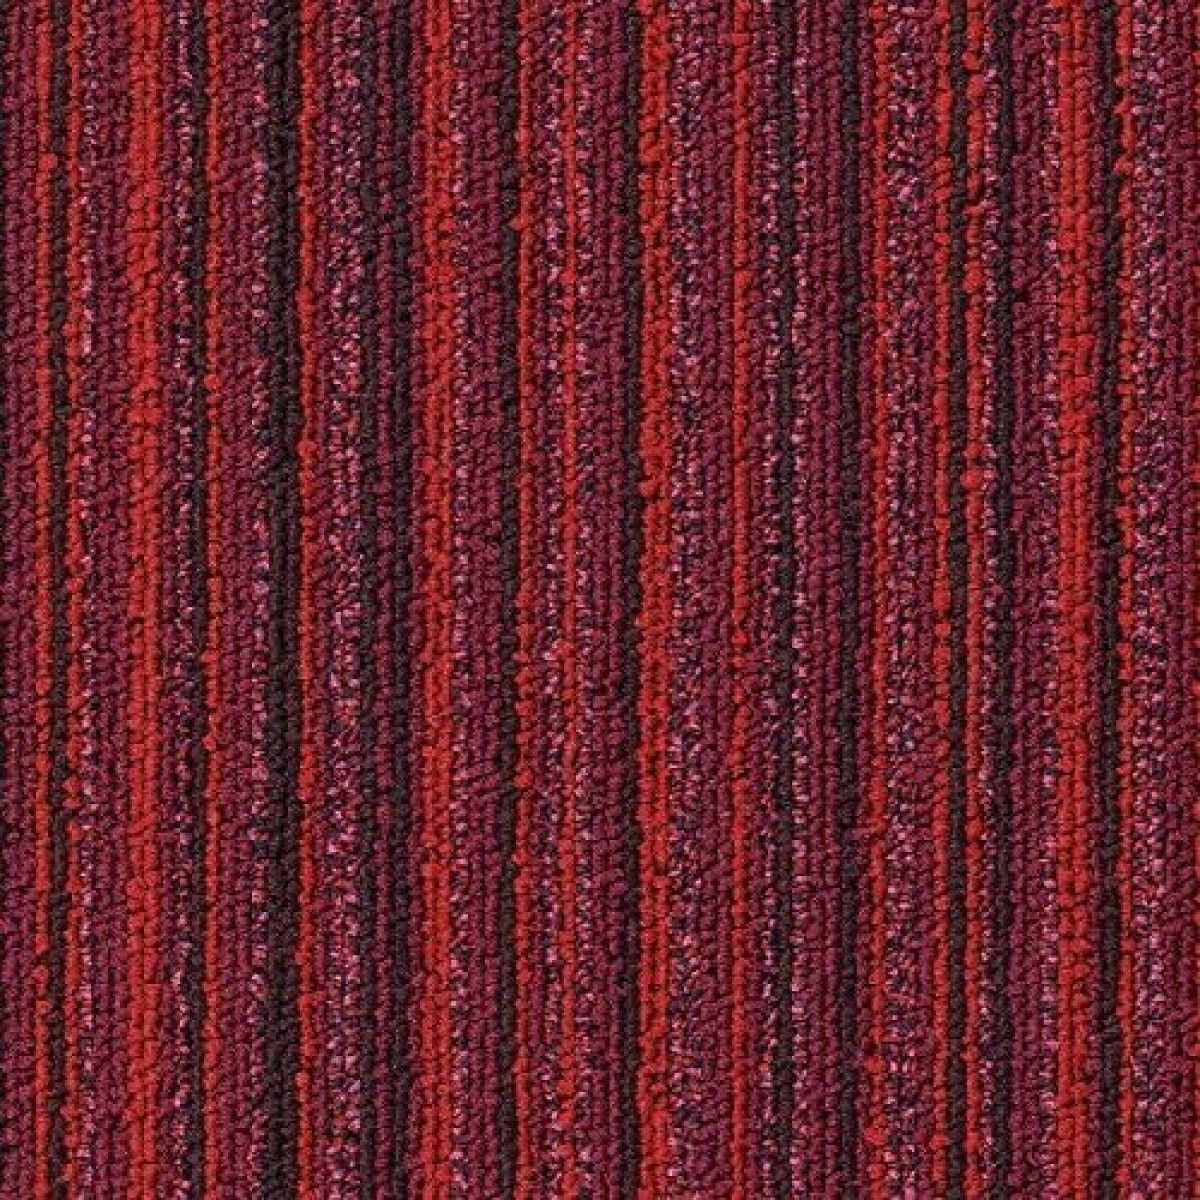 Interface Carpet Tiles Red